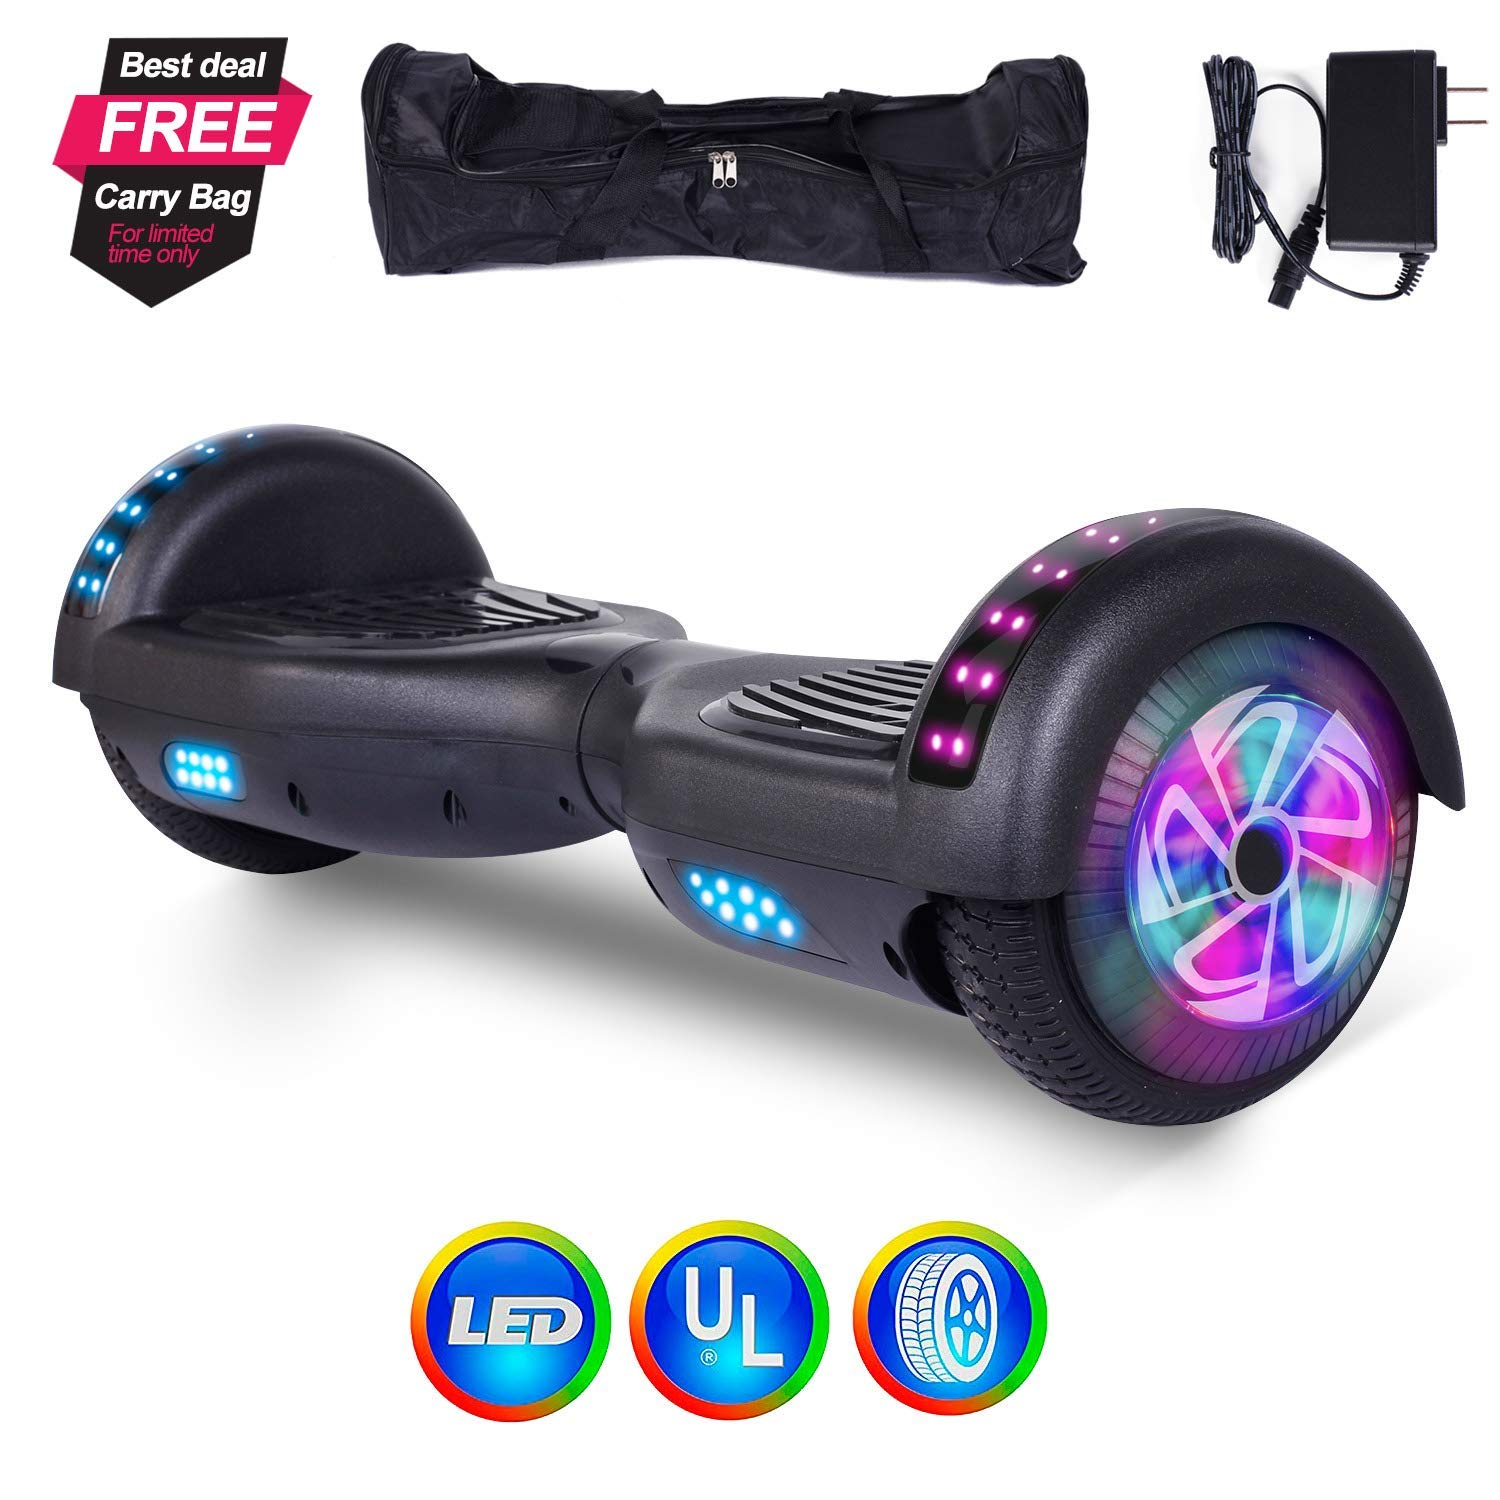 6 5 2 Wheels Electric Scooter Hoverboard Self Balancing Dual Motor Led